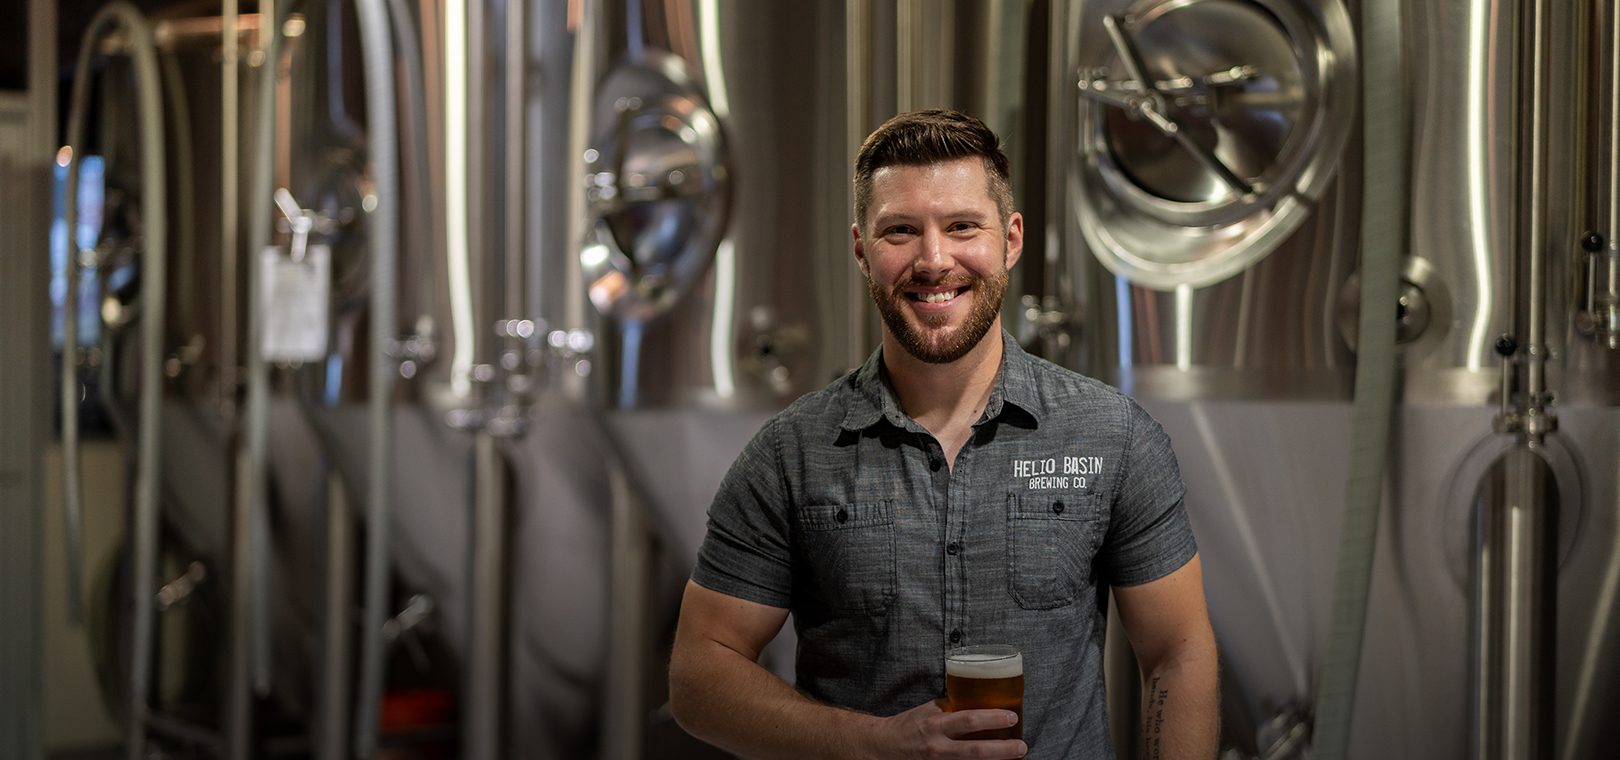 """Dustin Hazer, Owner & brewmaster   With a background in Pharmaceutical Science, Dustin left the research world to attend the Siebel Institute's World Brewing Academy in Chicago, IL several years ago. After completing the coursework there, he went on to start his brewing career at Ellicottville Brewing Company in Western New York, getting to apply all aspects of his learned technical brewing skills in the 1,000 bbl/year setup.  After two years in Ellicottville, Dustin left for an opportunity to brew at Arizona's largest craft brewery, Four Peaks Brewing Company in Tempe. Dustin was there while the operation expanded from around 18,000 bbls per year to close to 40,000 as both a brewpub and distribution brewery. After about three years in the Valley, a large opportunity arose. A friendly phone call from Southern Tier founder Phin DeMink, sharing plans of an upcoming brewhaus expansion as well as other new projects, led Dustin back to Western New York. He was the Brewmaster with Southern Tier Brewing Company for almost four years where he was in charge of all brewing operations, commissioning the new 110 bbl Steinecker brewhaus, along with new 660 bbl and 880 bbl fermenters, cellar and yeast automation and a new state of the art centrifuge. During that time, they grew from around 40,000 bbls per year to producing over 100,000 bbls per year, becoming one of the top 35 breweries in the country.  Now back in the Valley of the sun, he is excited to get Helio Basin Brewing Company established for all to enjoy.  """"I feel very fortunate to have been a part of three great breweries throughout my career and to have learned and worked alongside some of the best people you could hope to meet. The camaraderie of the industry has really shown through, as everyone has been very supportive with this endeavor and we are looking forward to making great beer, great food and establishing a sense of community here at Helio Basin Brewing."""" – Dustin Hazer"""